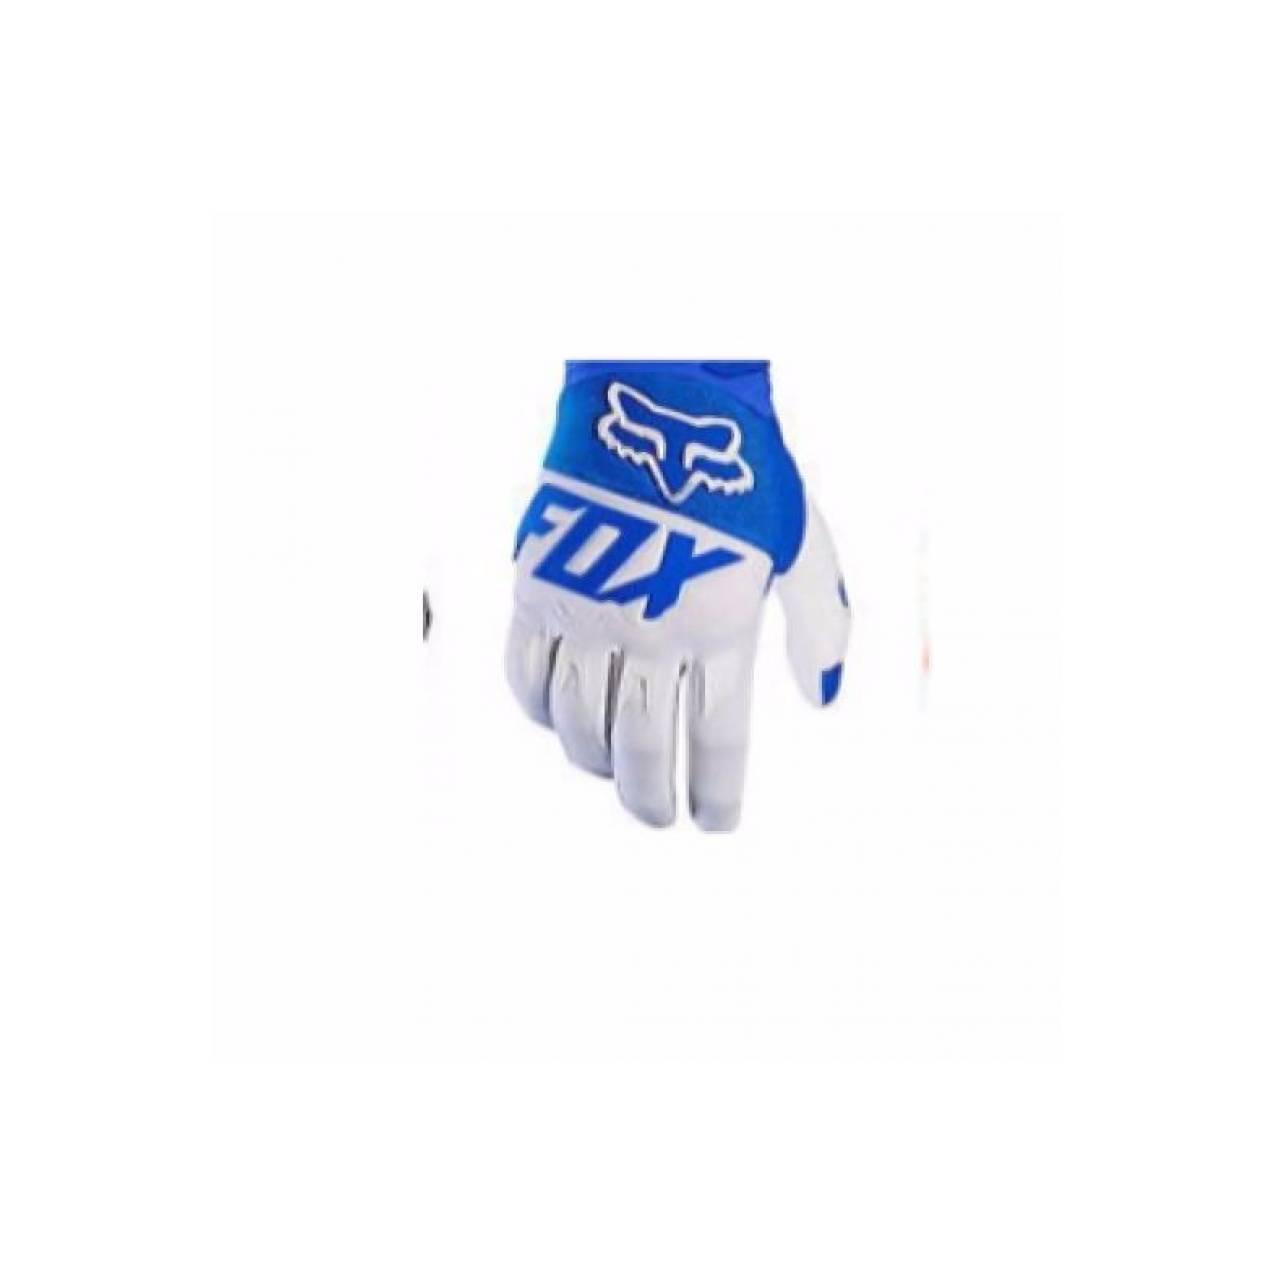 Sepeda Motor Touring Tour Bikers Bike Gloves Sports Outdoor Full Kuning. Source . Source .